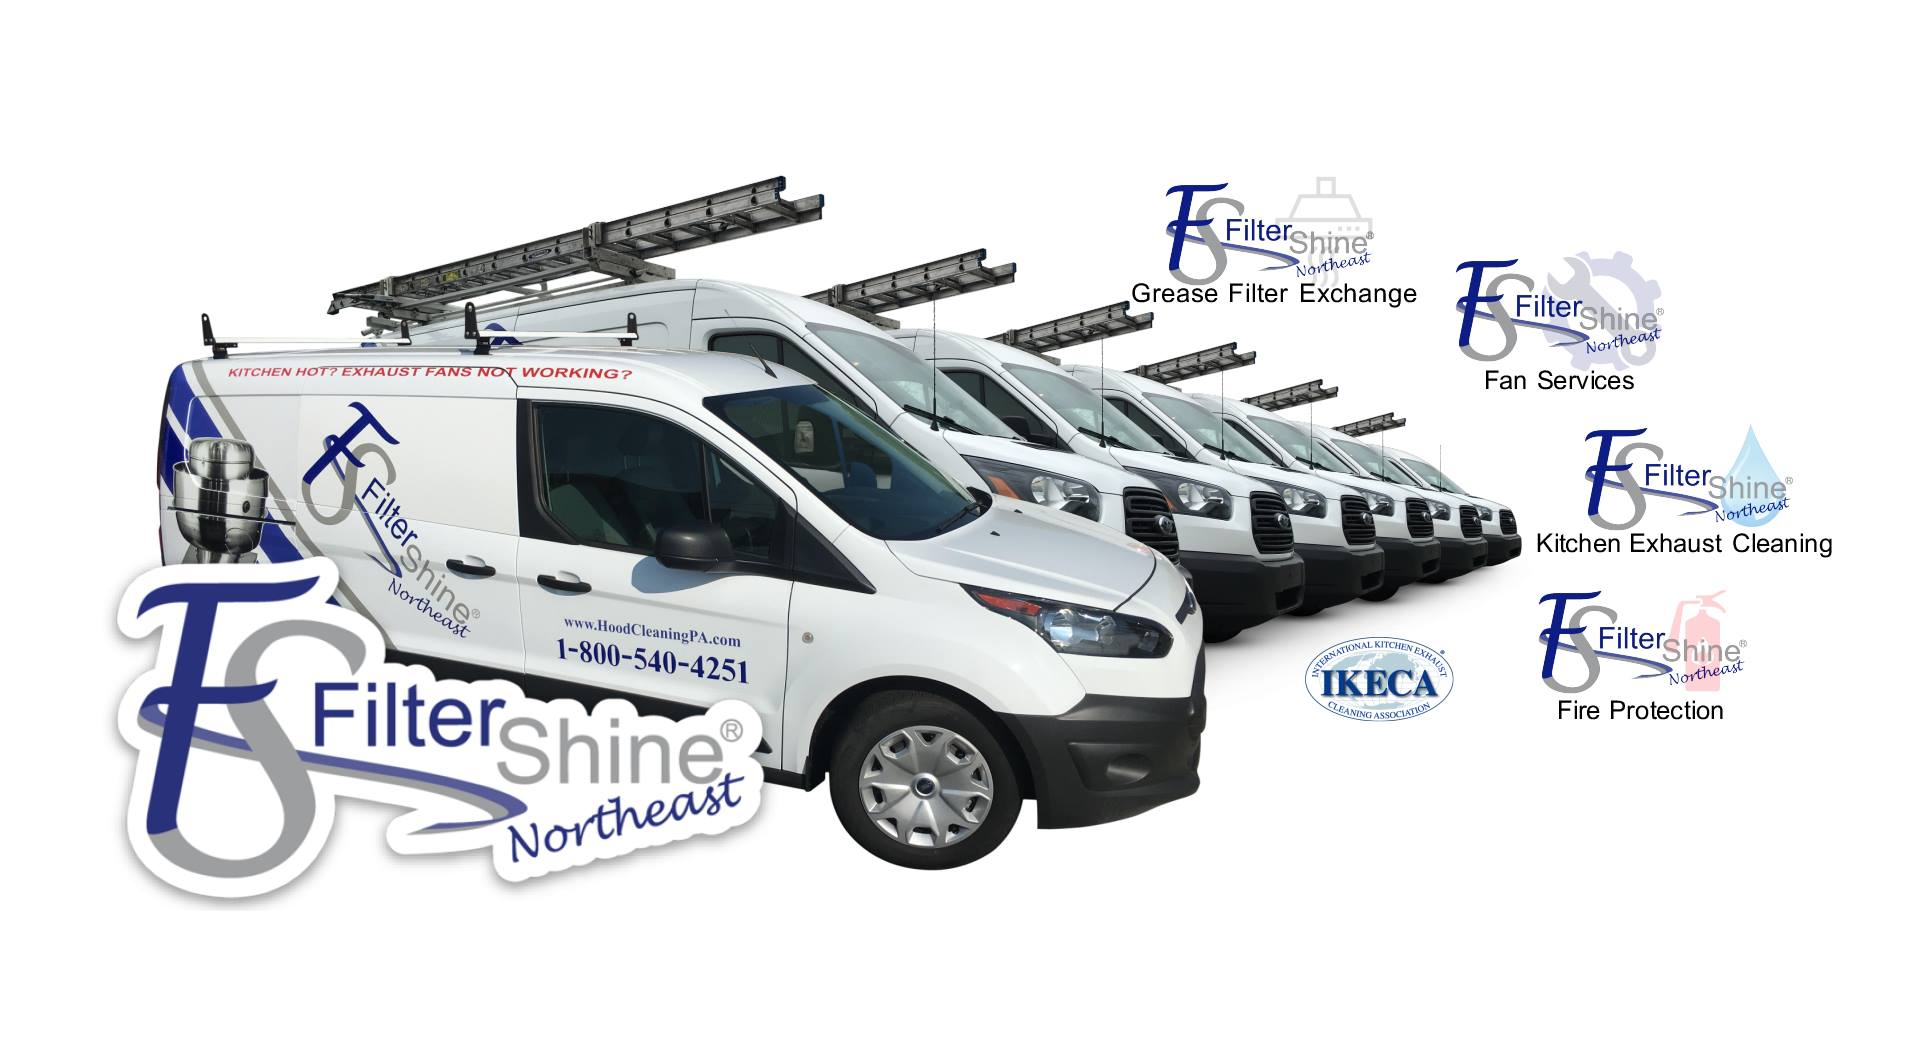 FilterShine Northeast Vans and Services